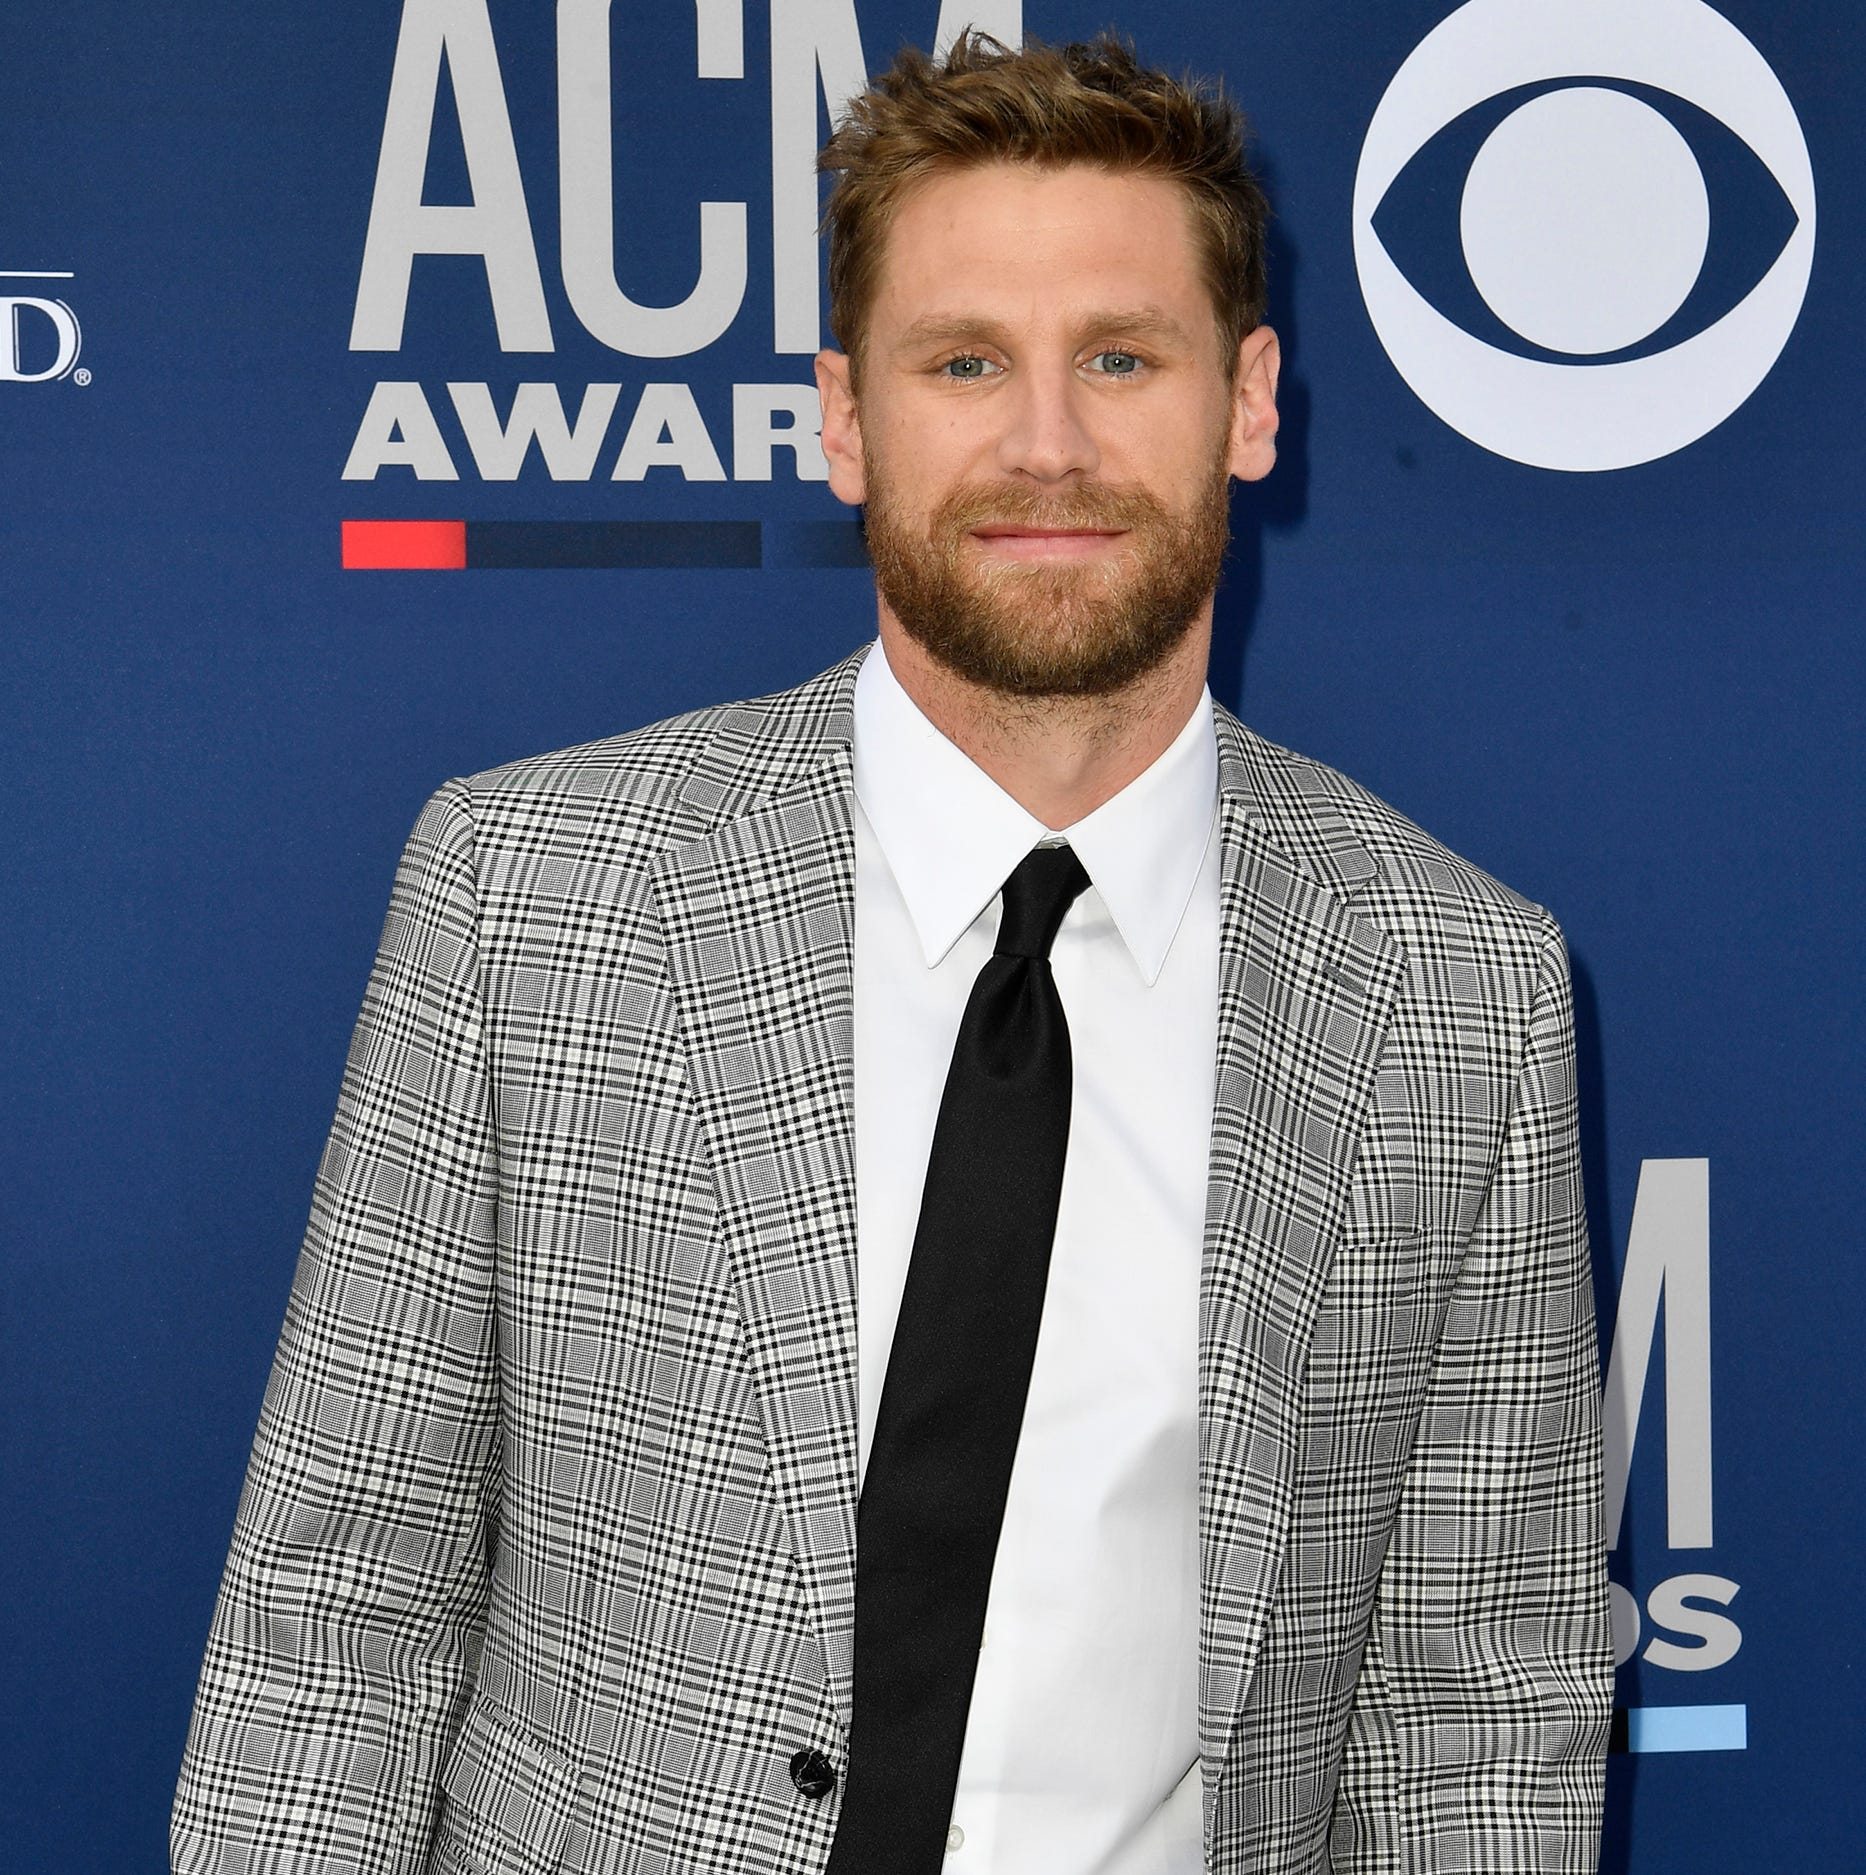 Chase Rice thankful for career stumbles as he eyes first No. 1 hit